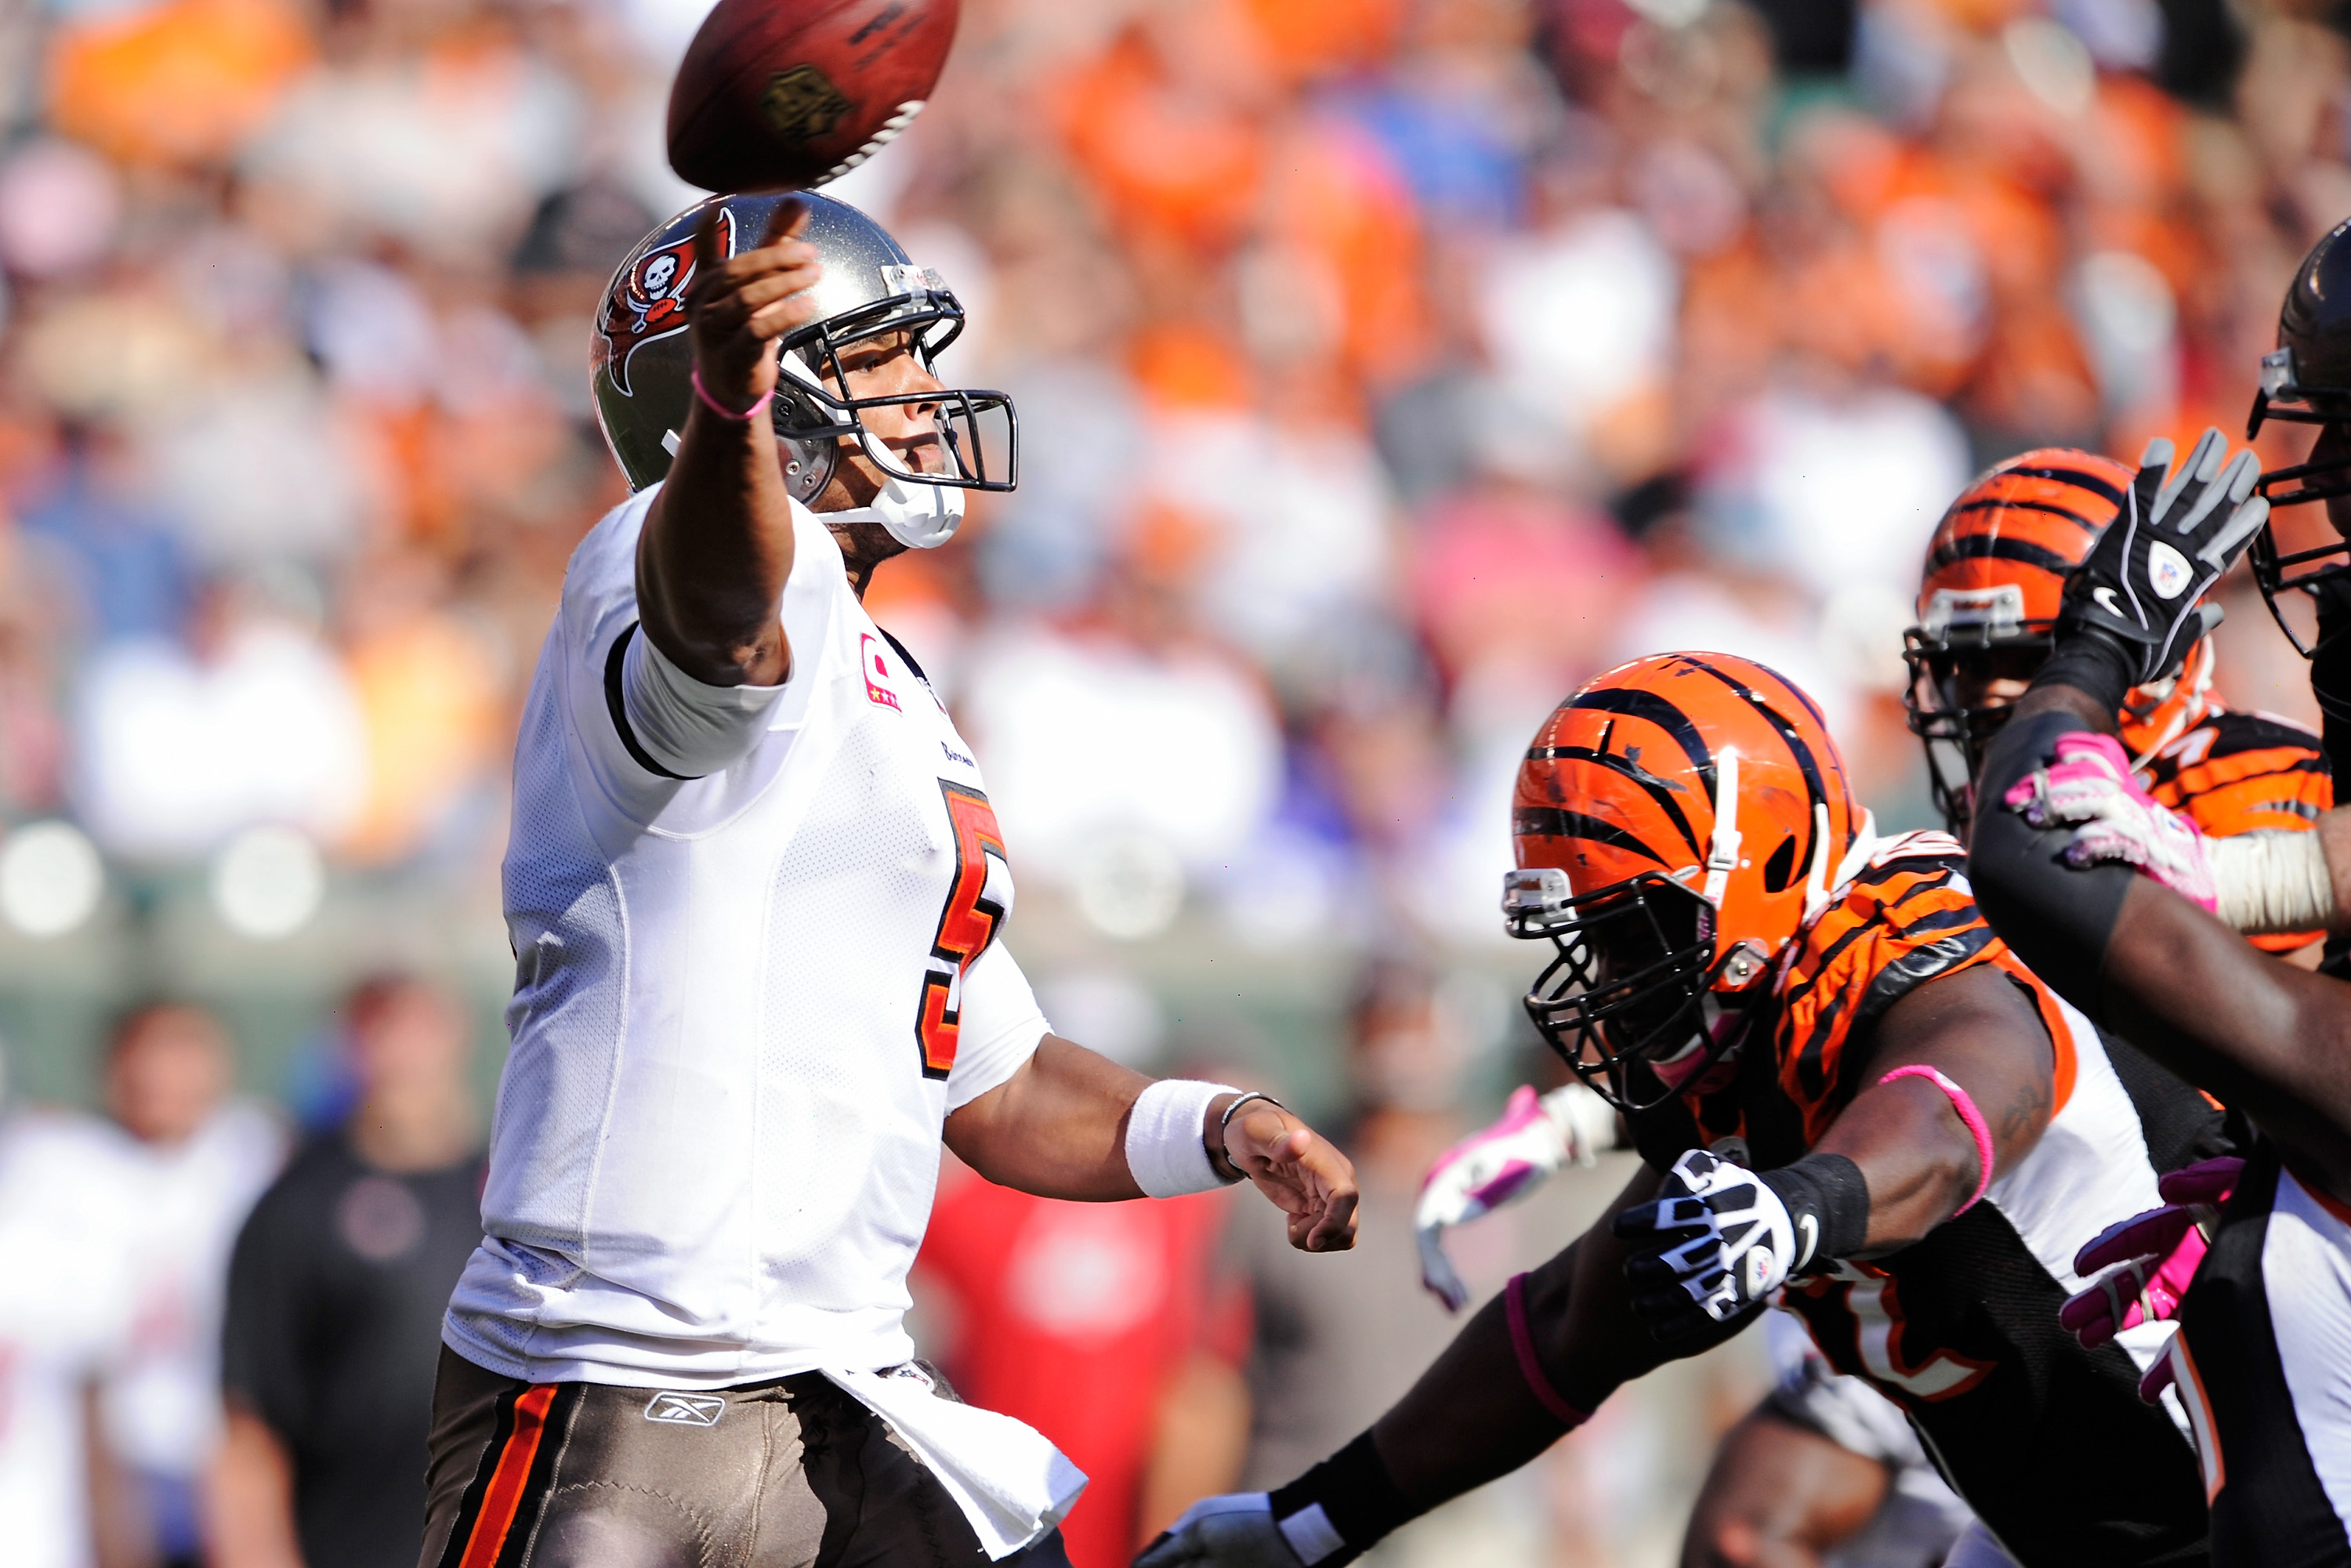 CINCINNATI, OH - OCTOBER 10:  Quarterback Josh Freeman #5 of the Tampa Bay Buccaneers gets off a pass as he is pressured by the Cincinnati Bengals defense at Paul Brown Stadium on October 10, 2010 in Cincinnati, Ohio.  (Photo by Jamie Sabau/Getty Images)